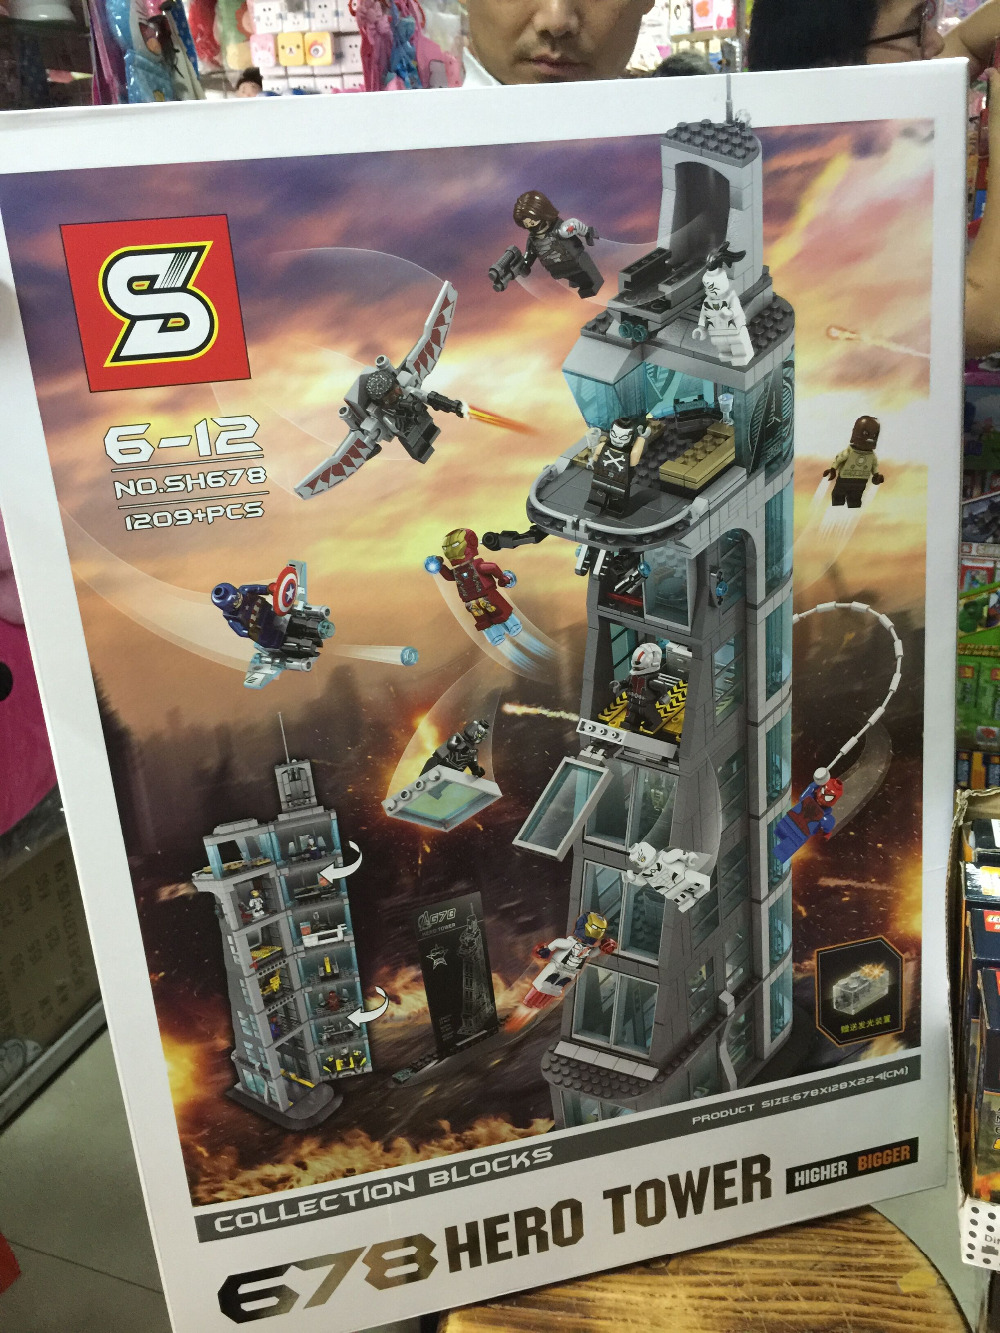 2017 SH678 1209Pcs Upgraded version Super Hero Attack On Avenger Tower Model Building Kit toy Blocks Brick Toy Compatible Gift 8pcs lot movie super hero 2 avenger aochuang era kid baby toy figure building blocks sets model toys compatible with lego